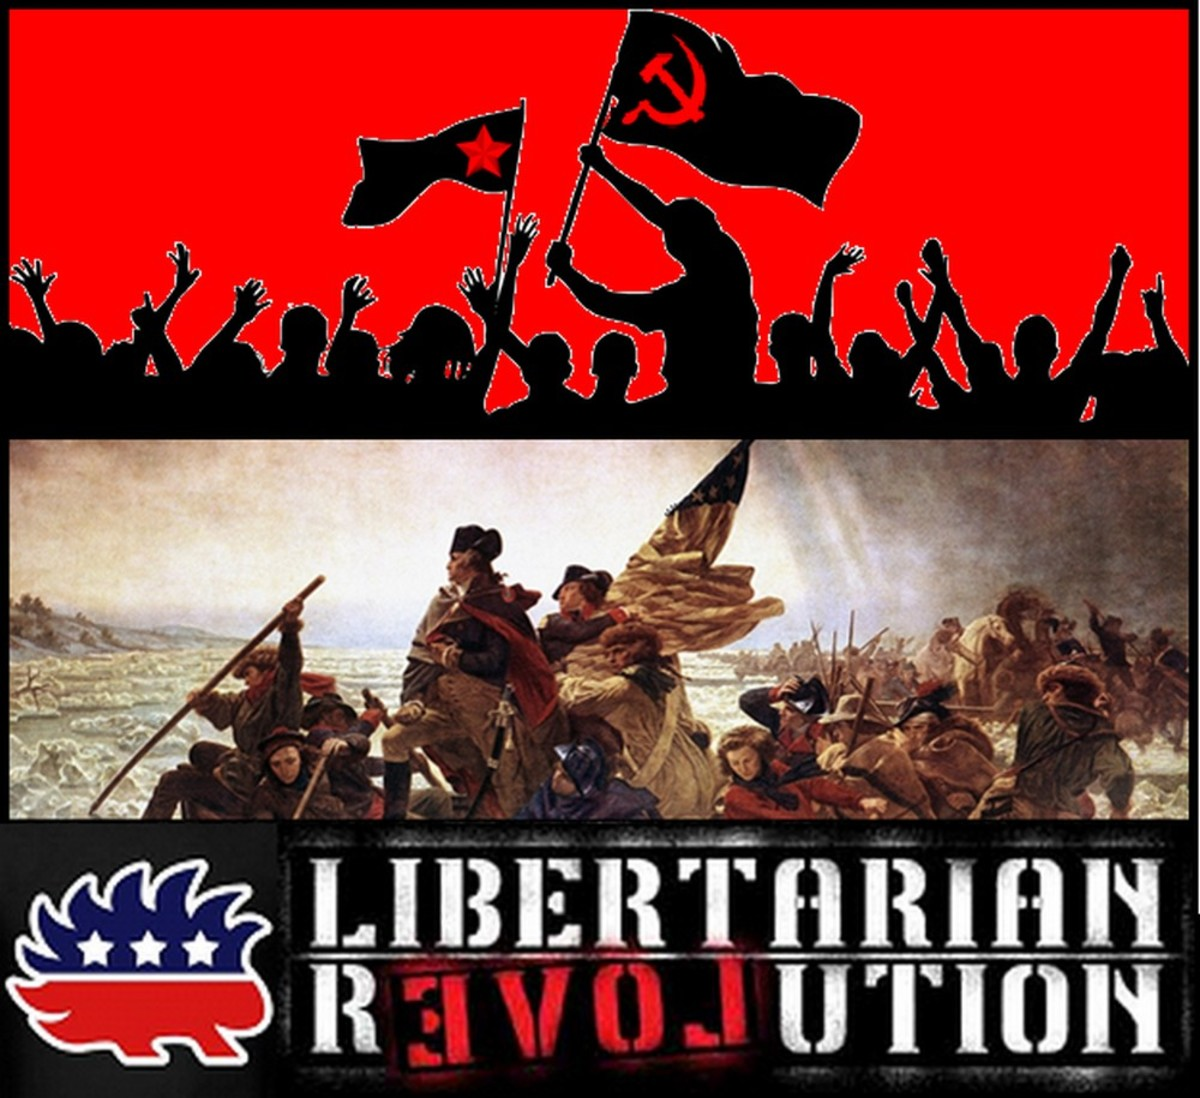 """Remember we are talking about revolution."" --  Saul Alinsky, Rules for Radicals. Communist vs. American vs. Libertarian: Not all revolutions are equal."